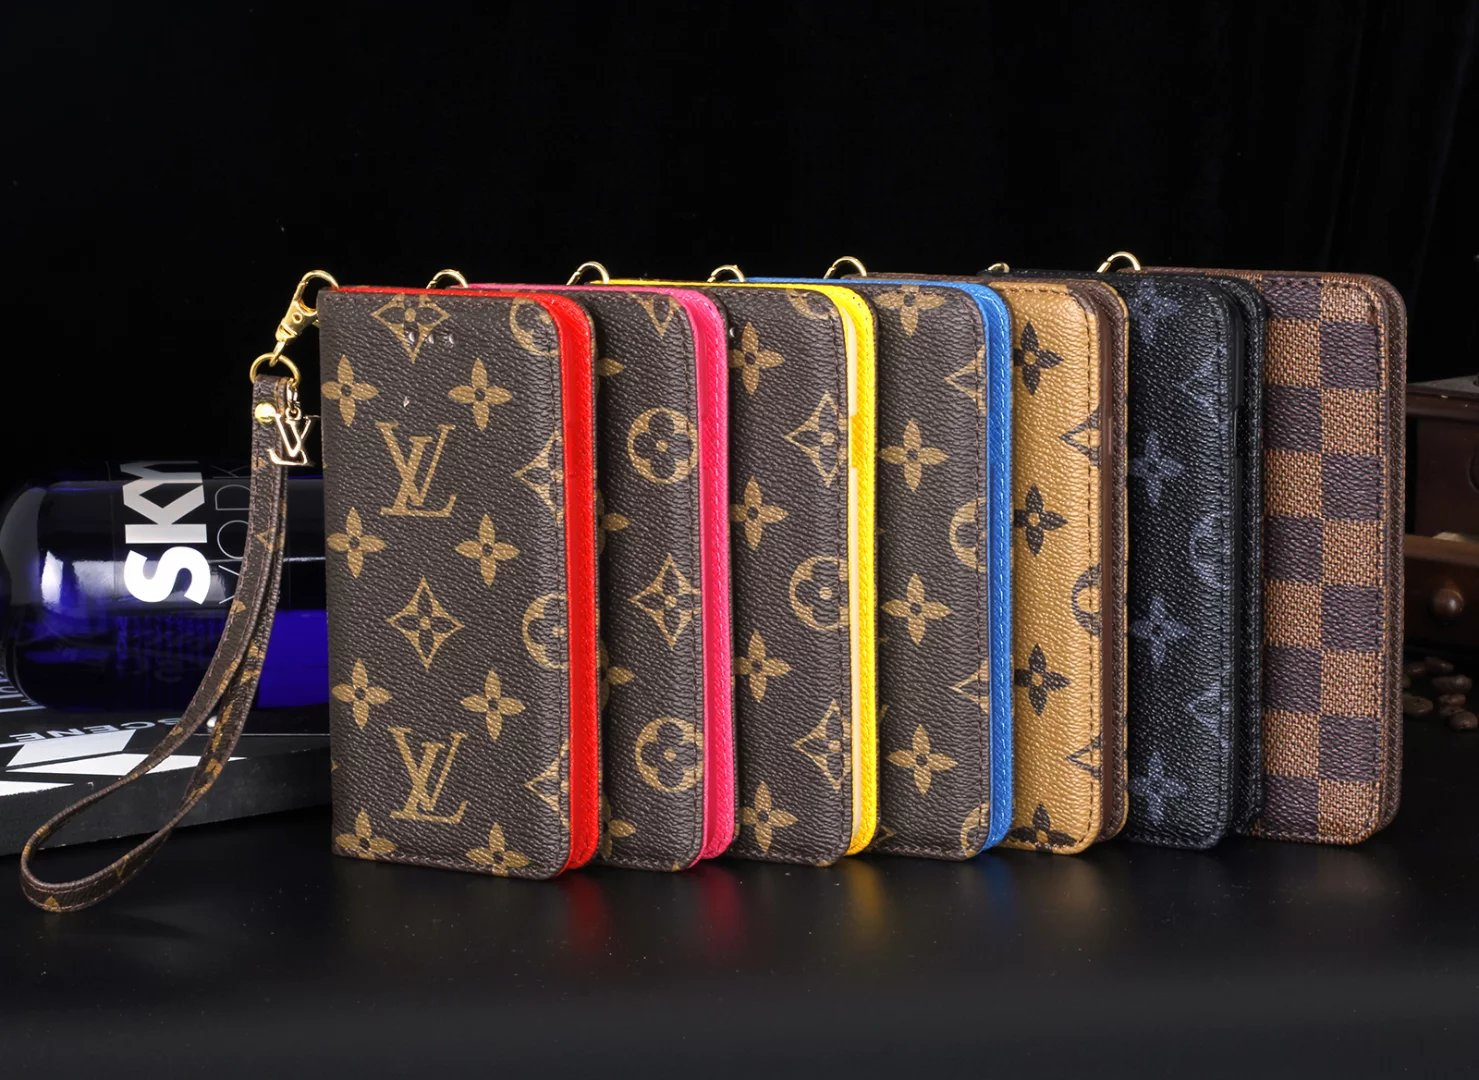 iphone case selber machen iphone hülle bedrucken Louis Vuitton iphone6 plus hülle iphone 6 Plus sporthülle iphone 6 Plus hülle mit akku neues i phone iphone hülle dünn hülle iphone 3gs handyhülle htc